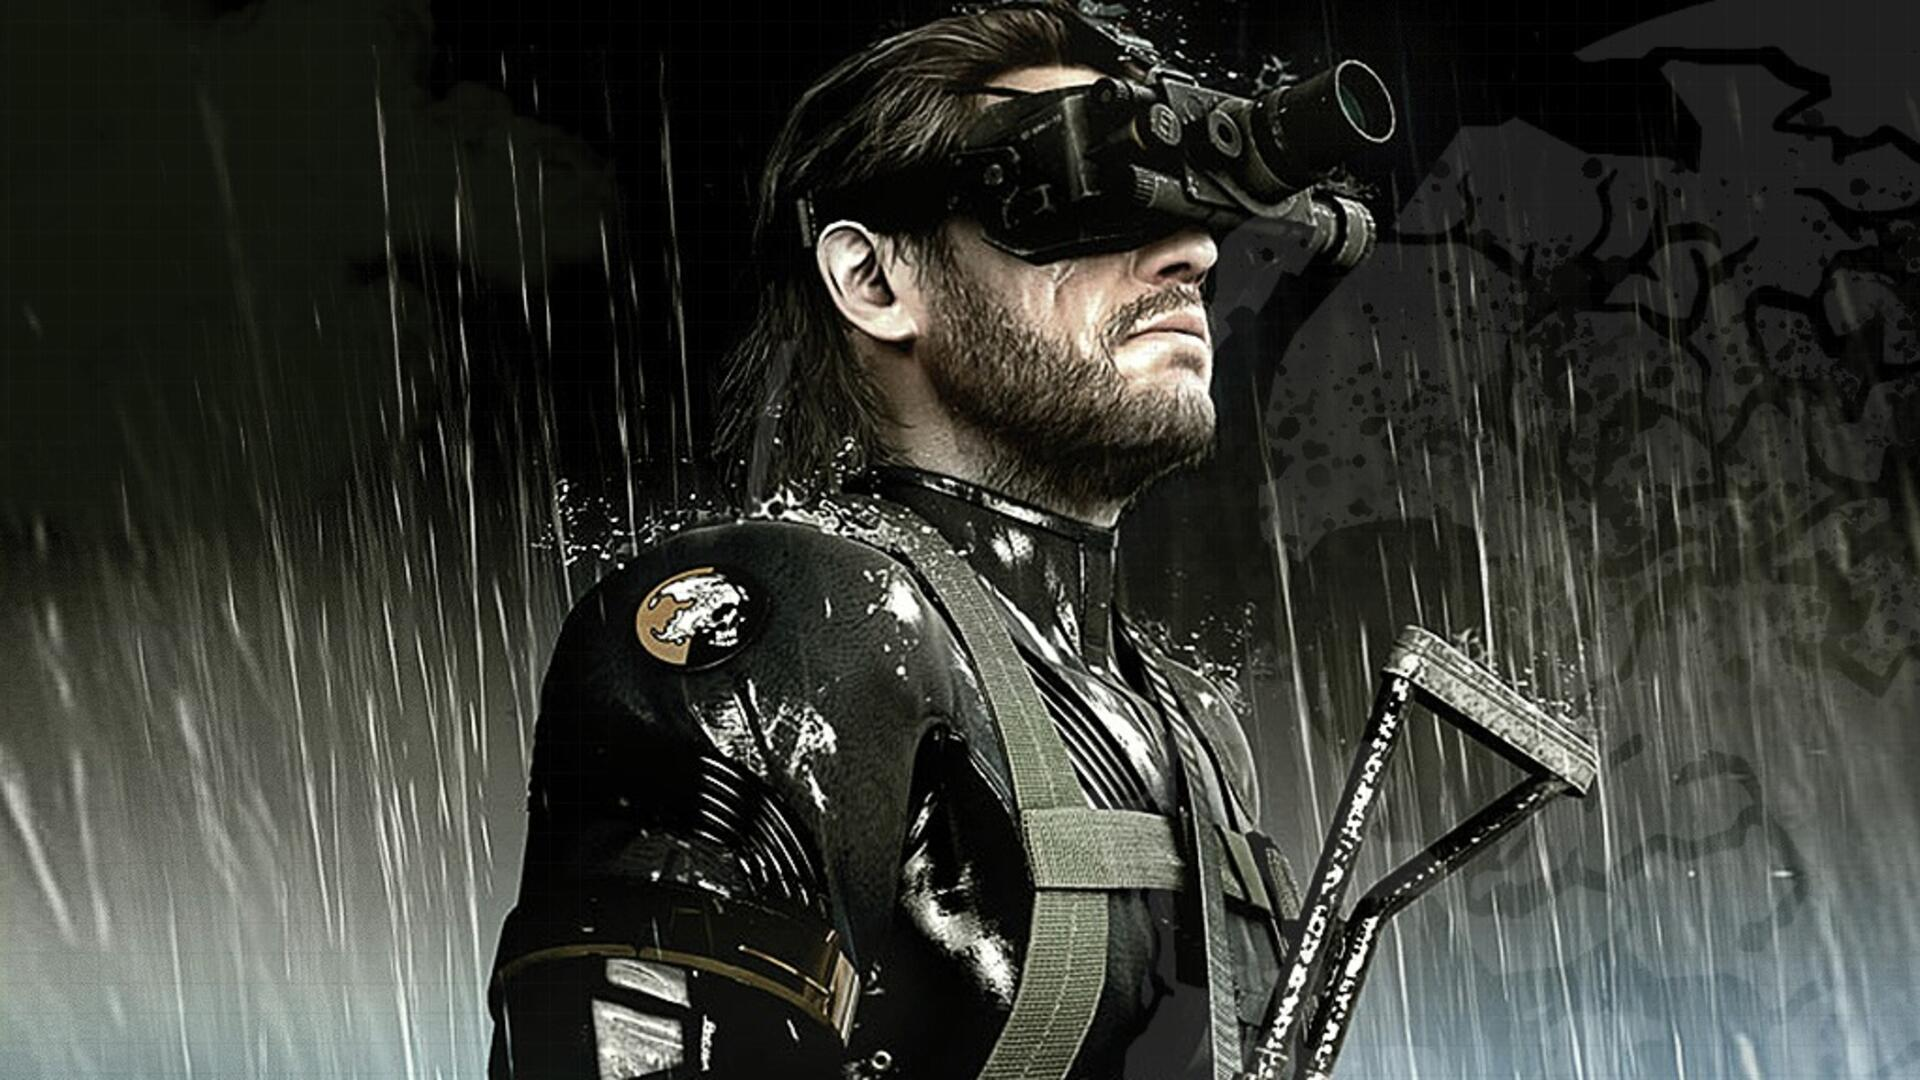 Ground Zeroes Gets a Price Drop, Companion App and Content for